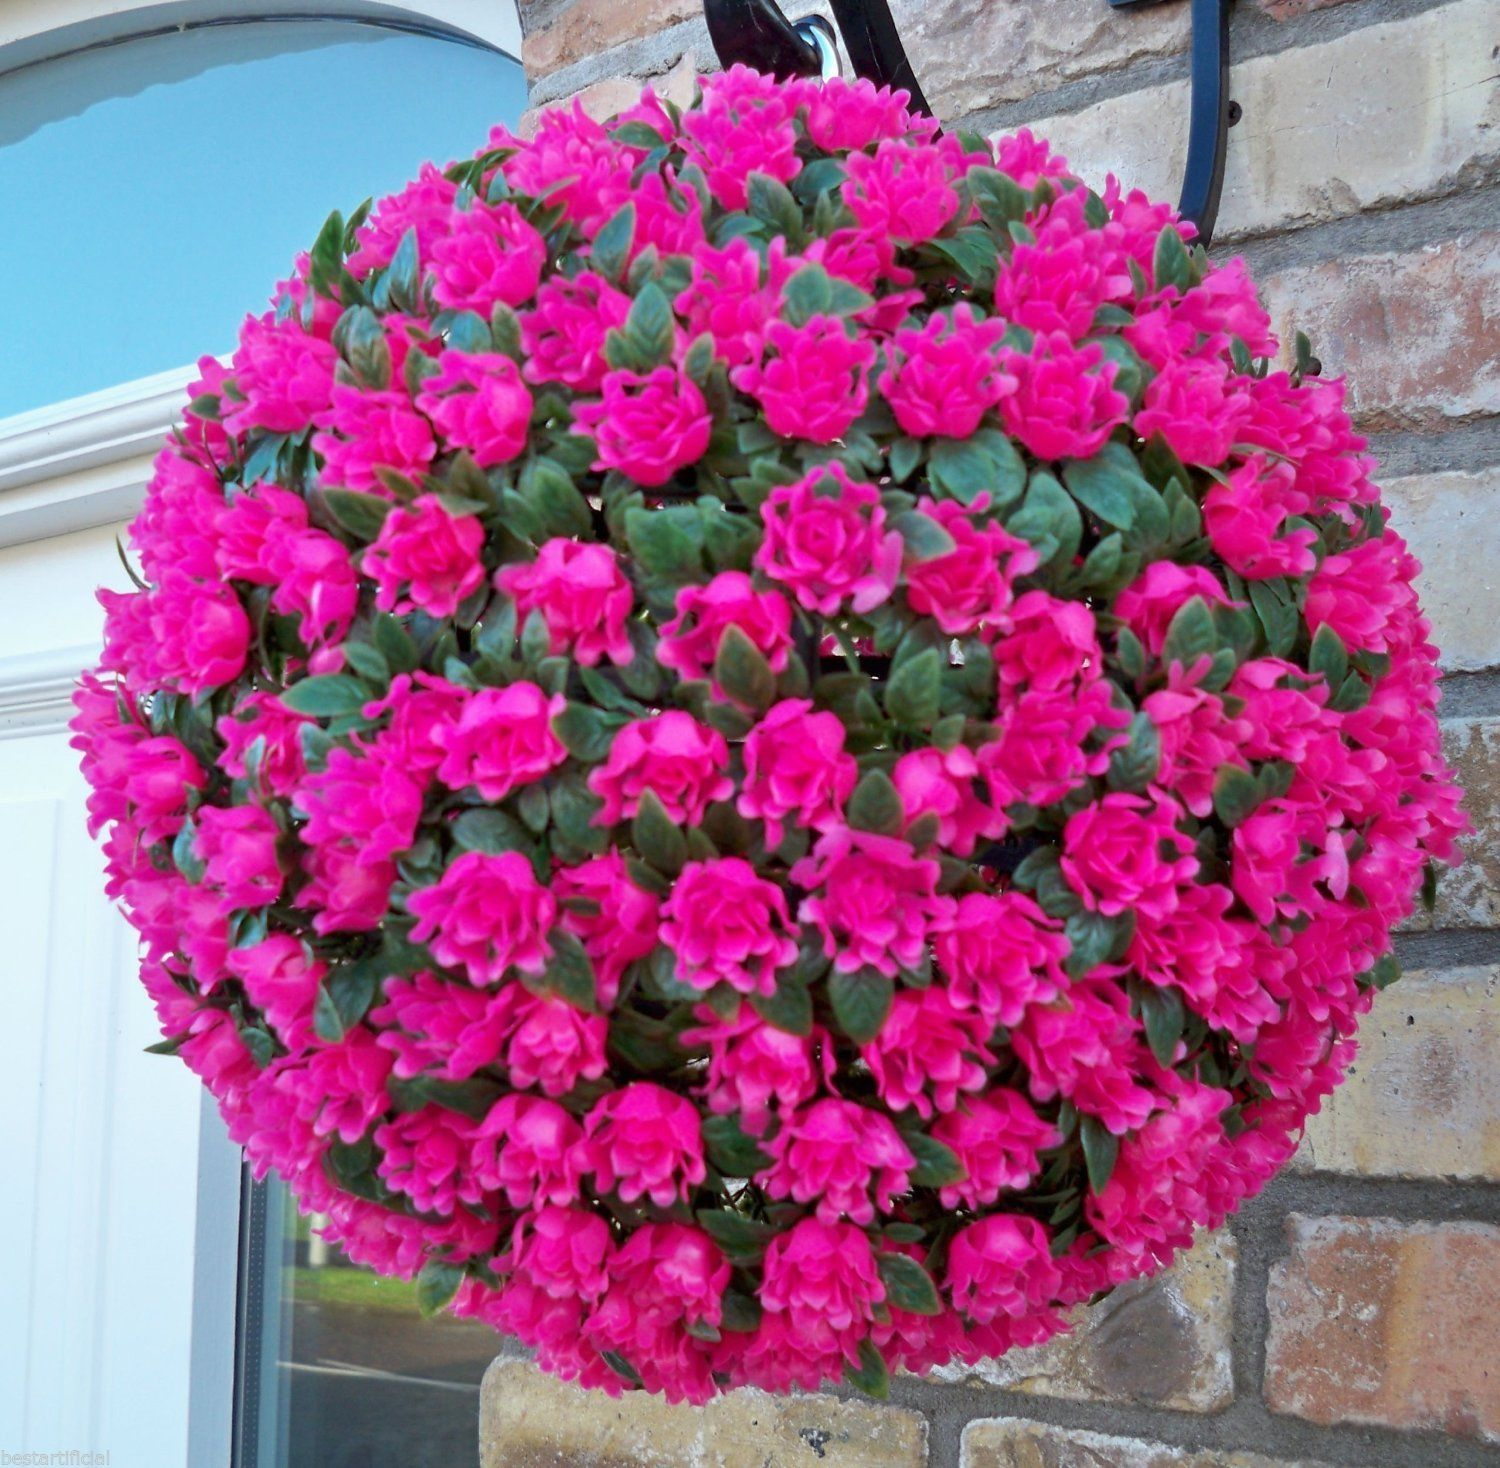 Using Hanging Flower Basket Ideas Is A Very Good Option If You Want To Make Your Home More Appealing Hanging Flower Baskets Artificial Hanging Baskets Plants For Hanging Baskets